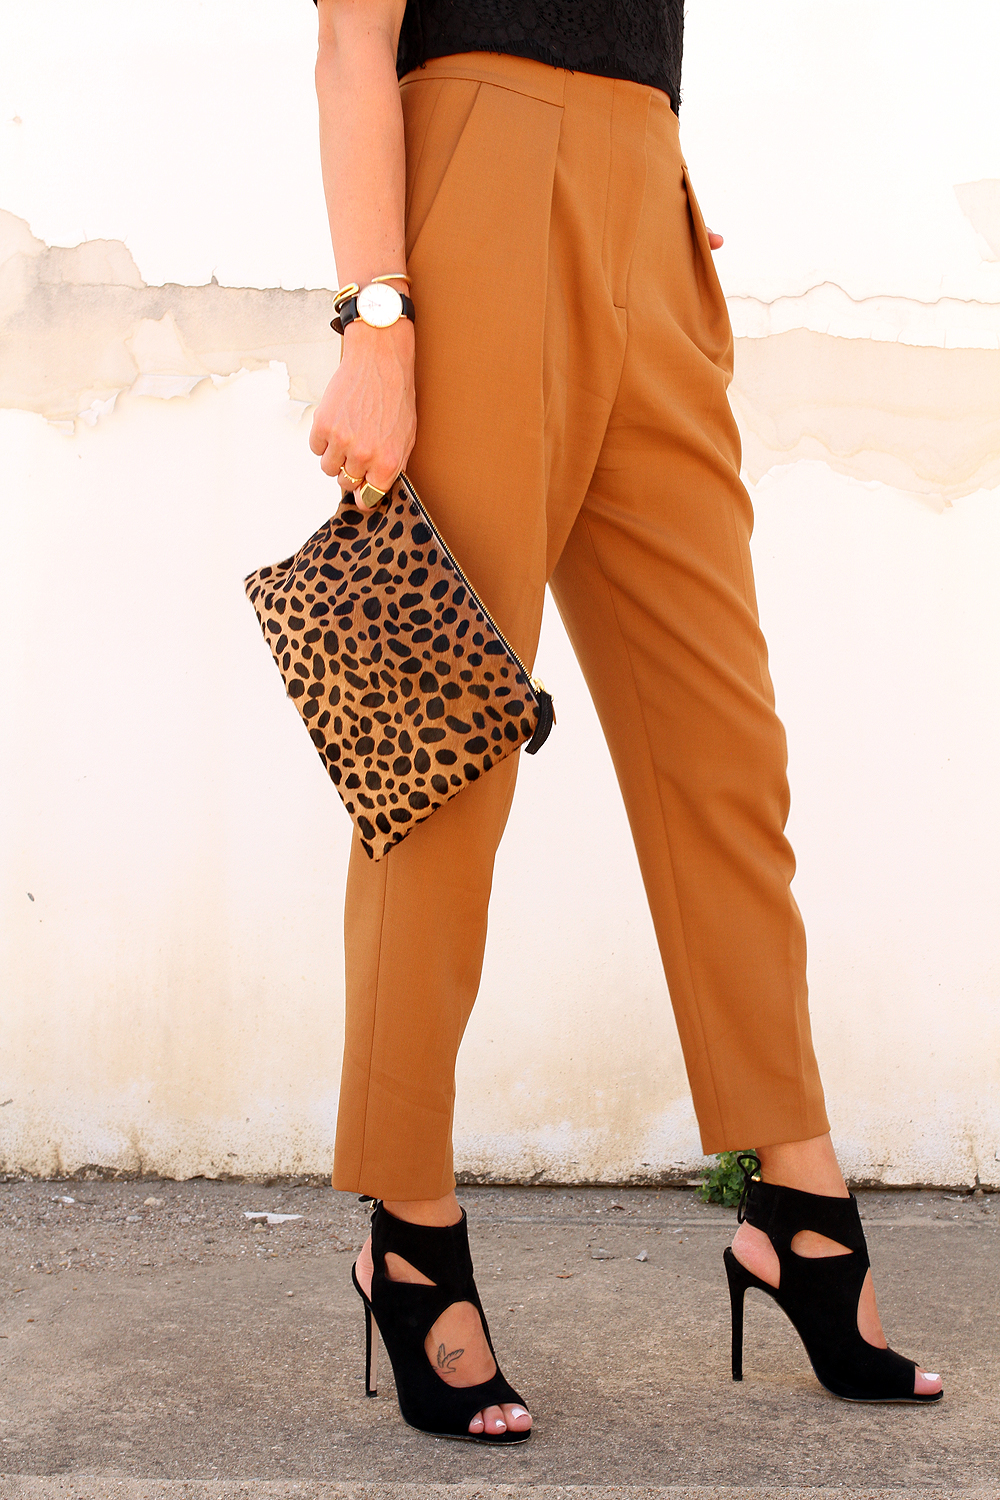 fashion-jackson-french-connection-trousers-aquazzura-sexy-thing-similar-heels-clare-v-leopard-clutch-daneil-wellington-watch